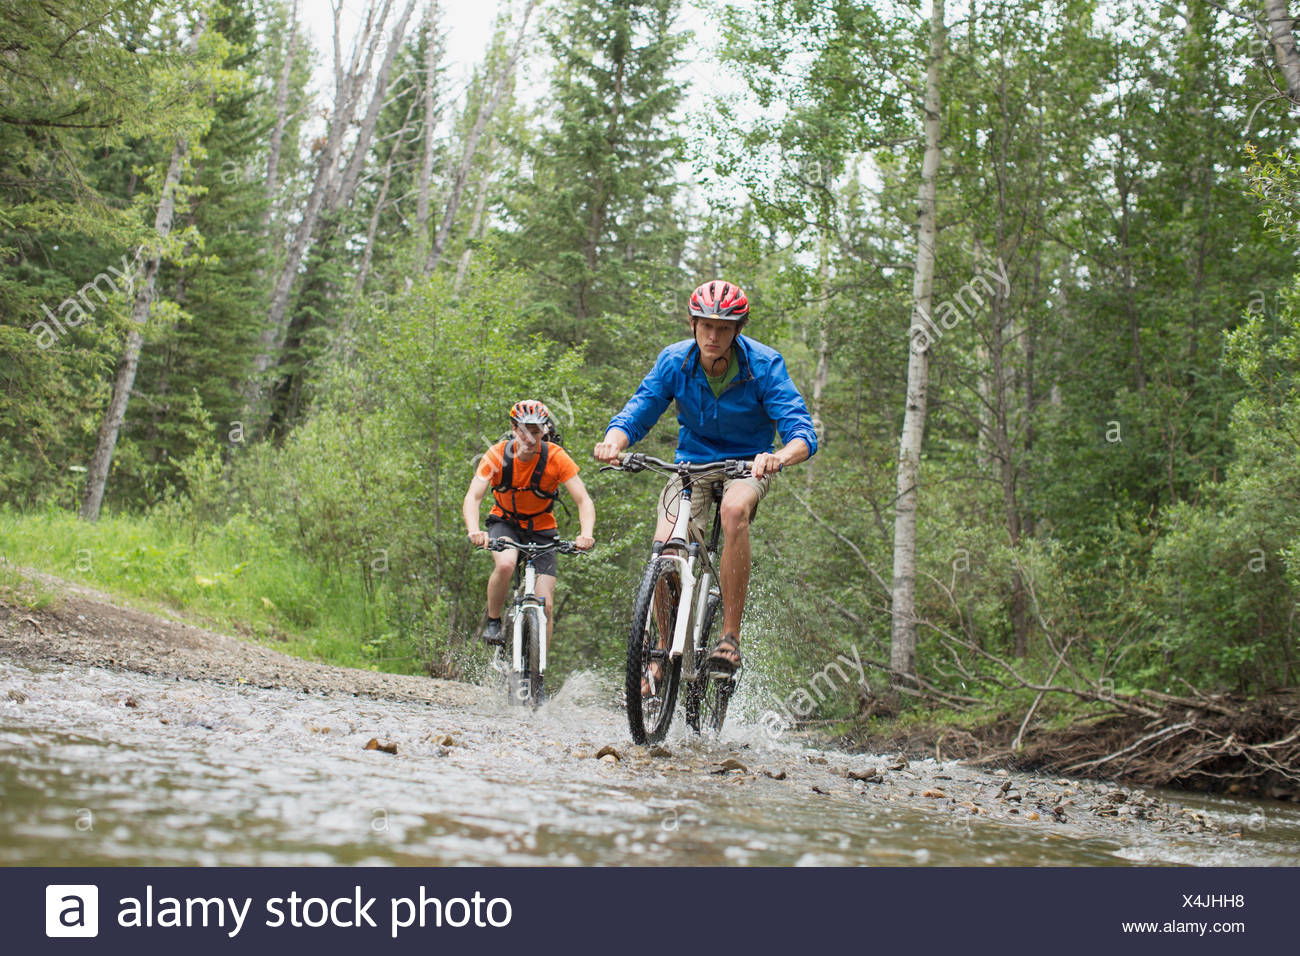 two male mountain bikers riding through stream - Stock Image